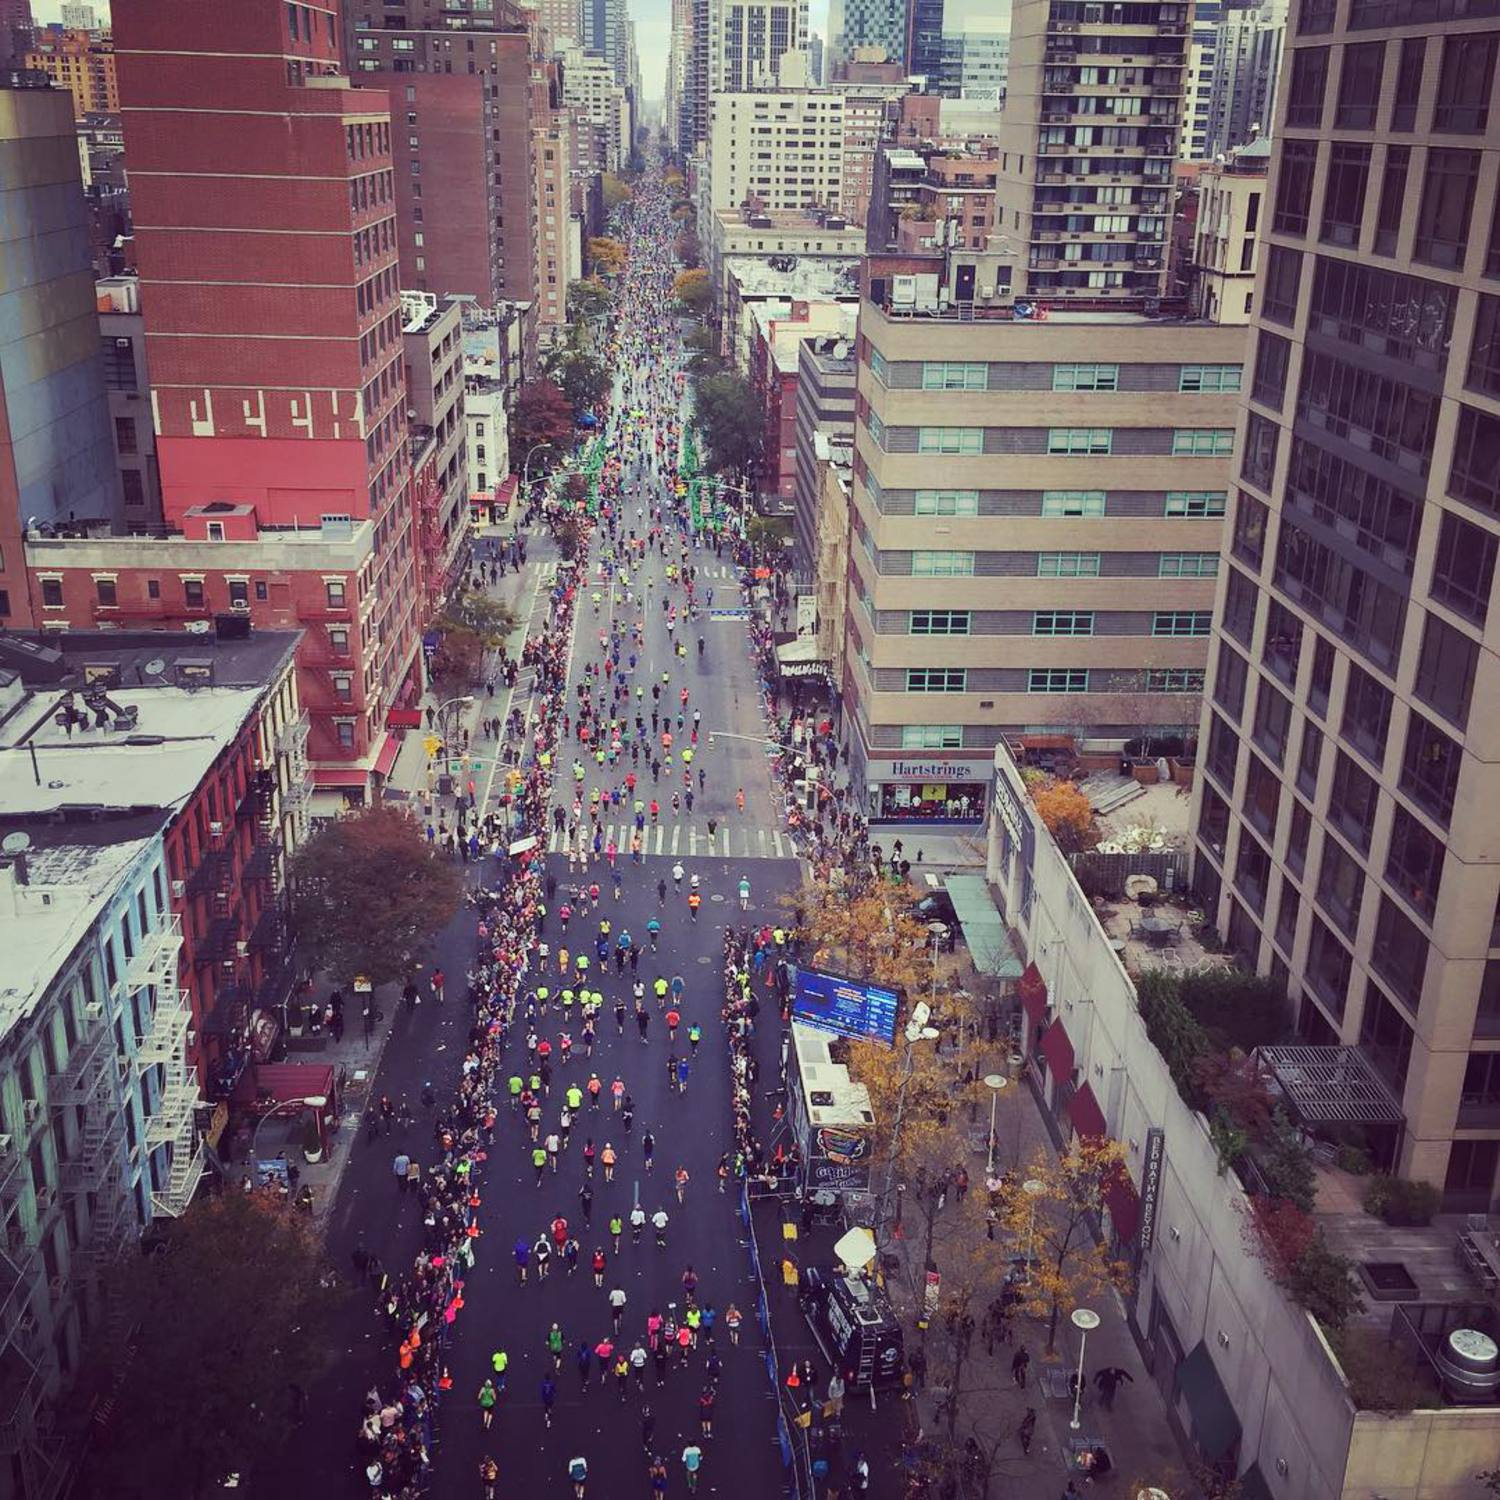 Congrats to all the #nymarathon2015 runners! Snagged this photo while on the #rooseveltisland Tram! #26miles